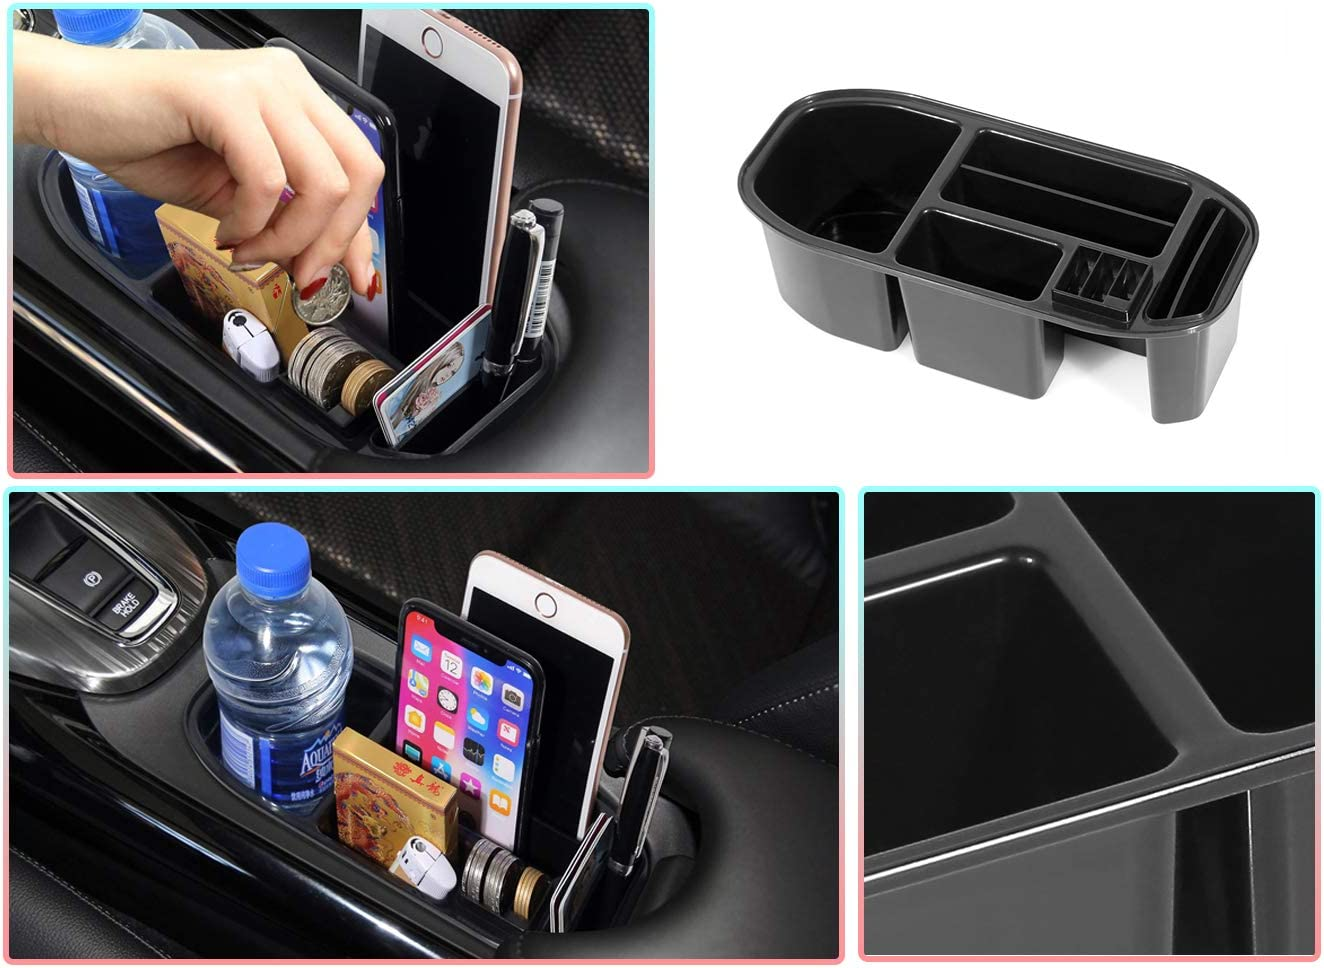 LFOTPP Custom Fit for HRV HR-V 2016-2020 Armrest Center Console Organizer Tray Accessories with Sunglasses Holder,Car Accessories Secondary Storage Box